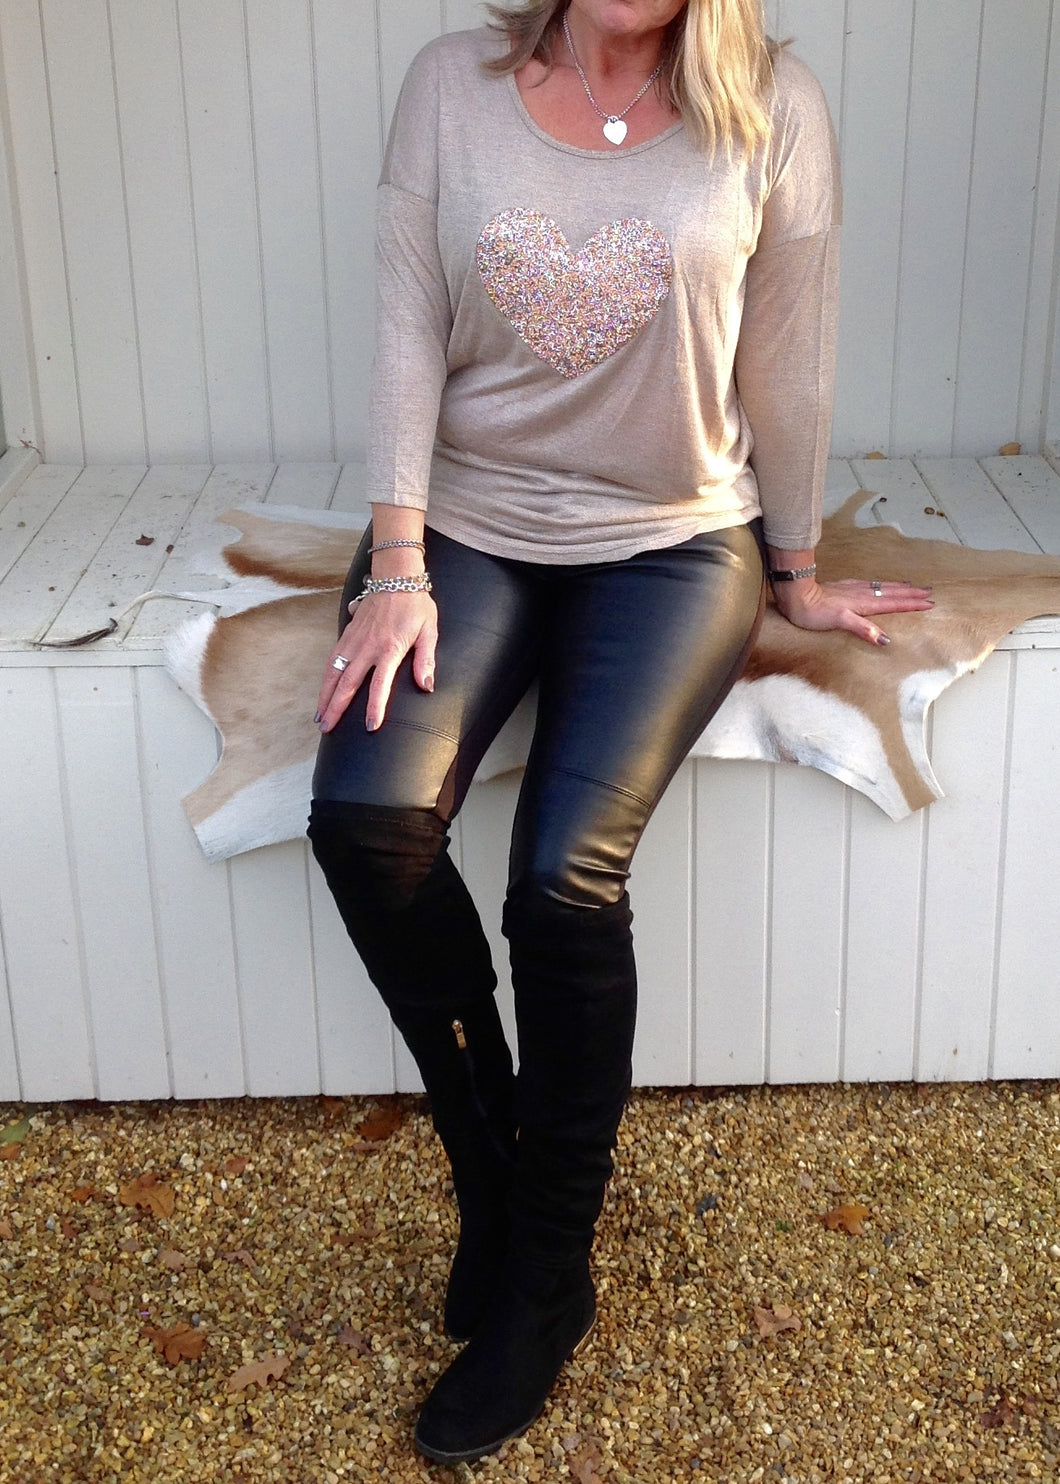 Sequin Heart T Shirt Top in Champagne Made In Italy By Feathers Of Italy One Size - Feathers Of Italy